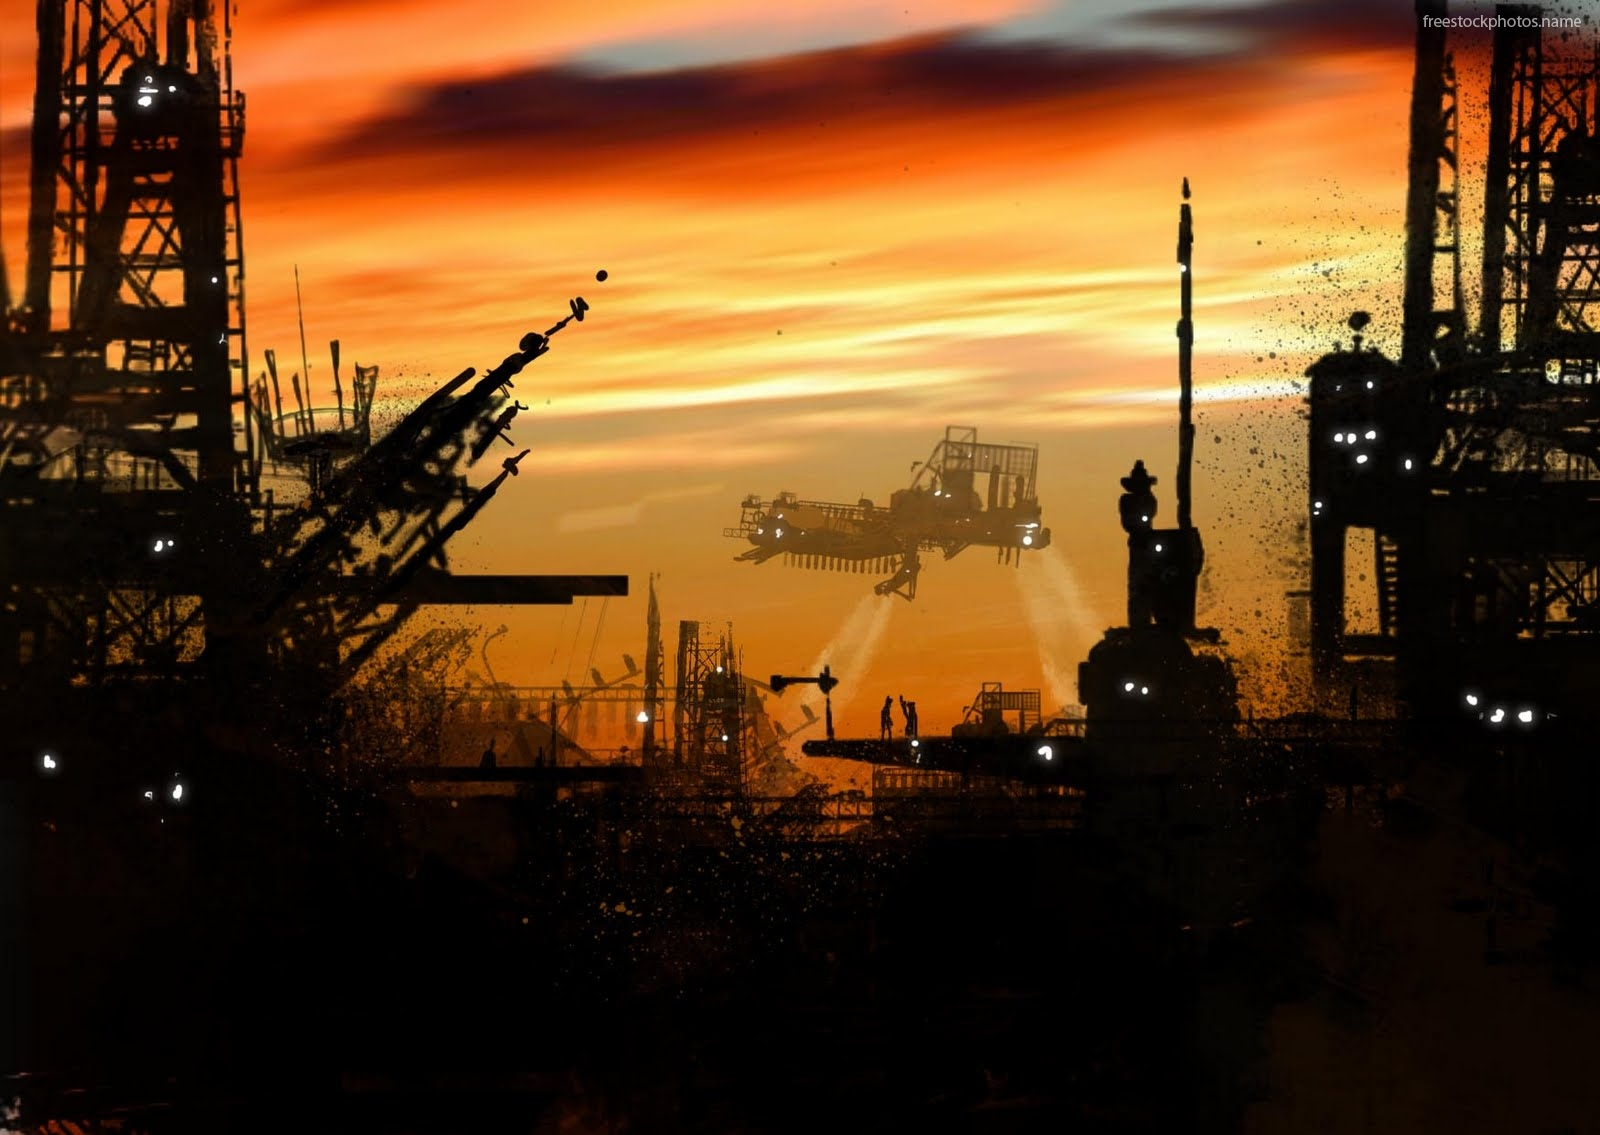 Pc Wallpaper 3d Hd Full Size Download Wallpaper Oil And Gas Gallery